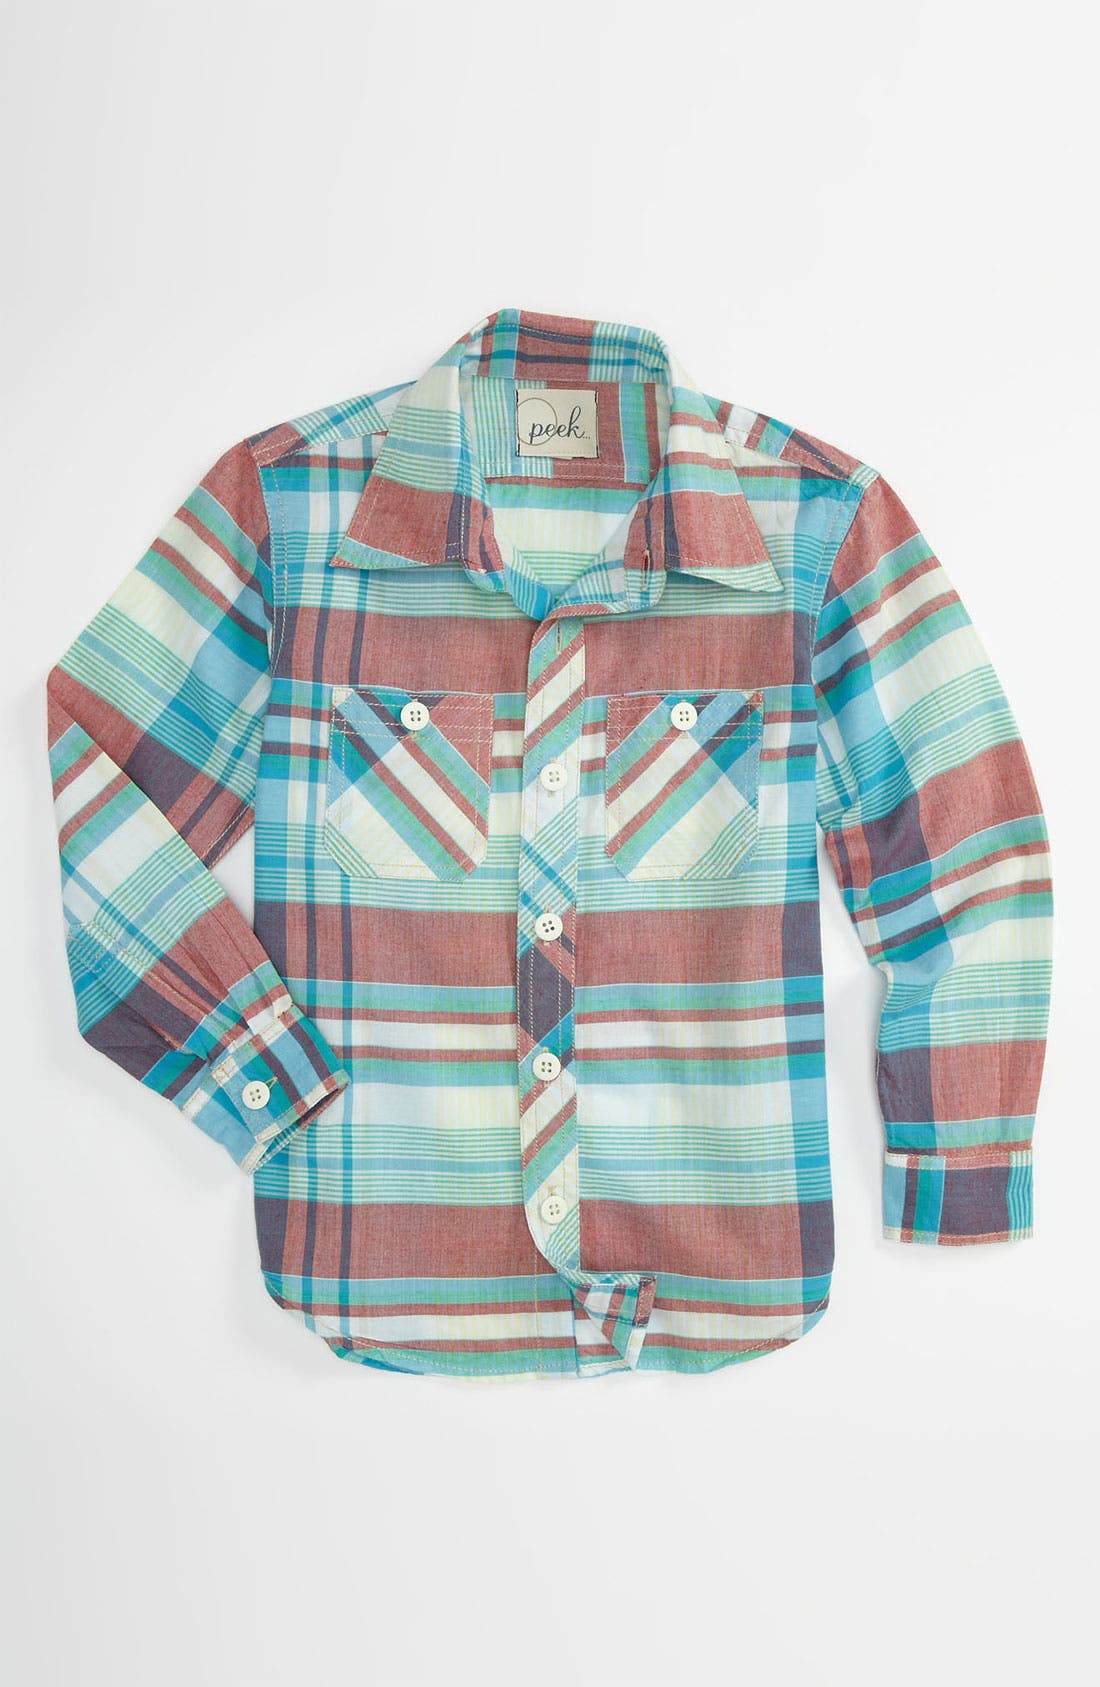 Alternate Image 1 Selected - Peek Plaid Utility Shirt (Toddler, Little Boys & Big Boys)